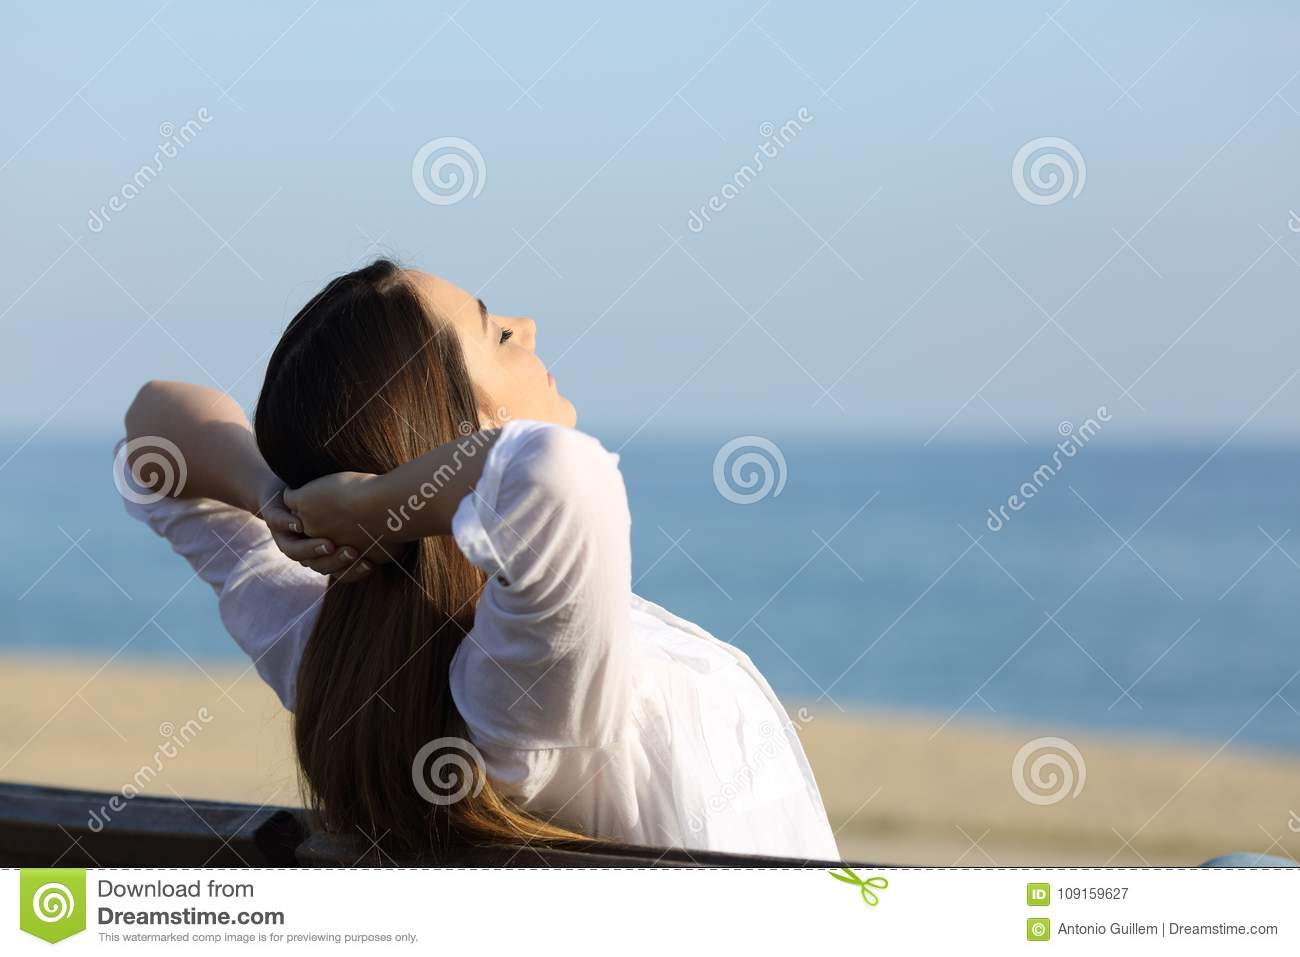 Woman relaxing on a bench on the beach